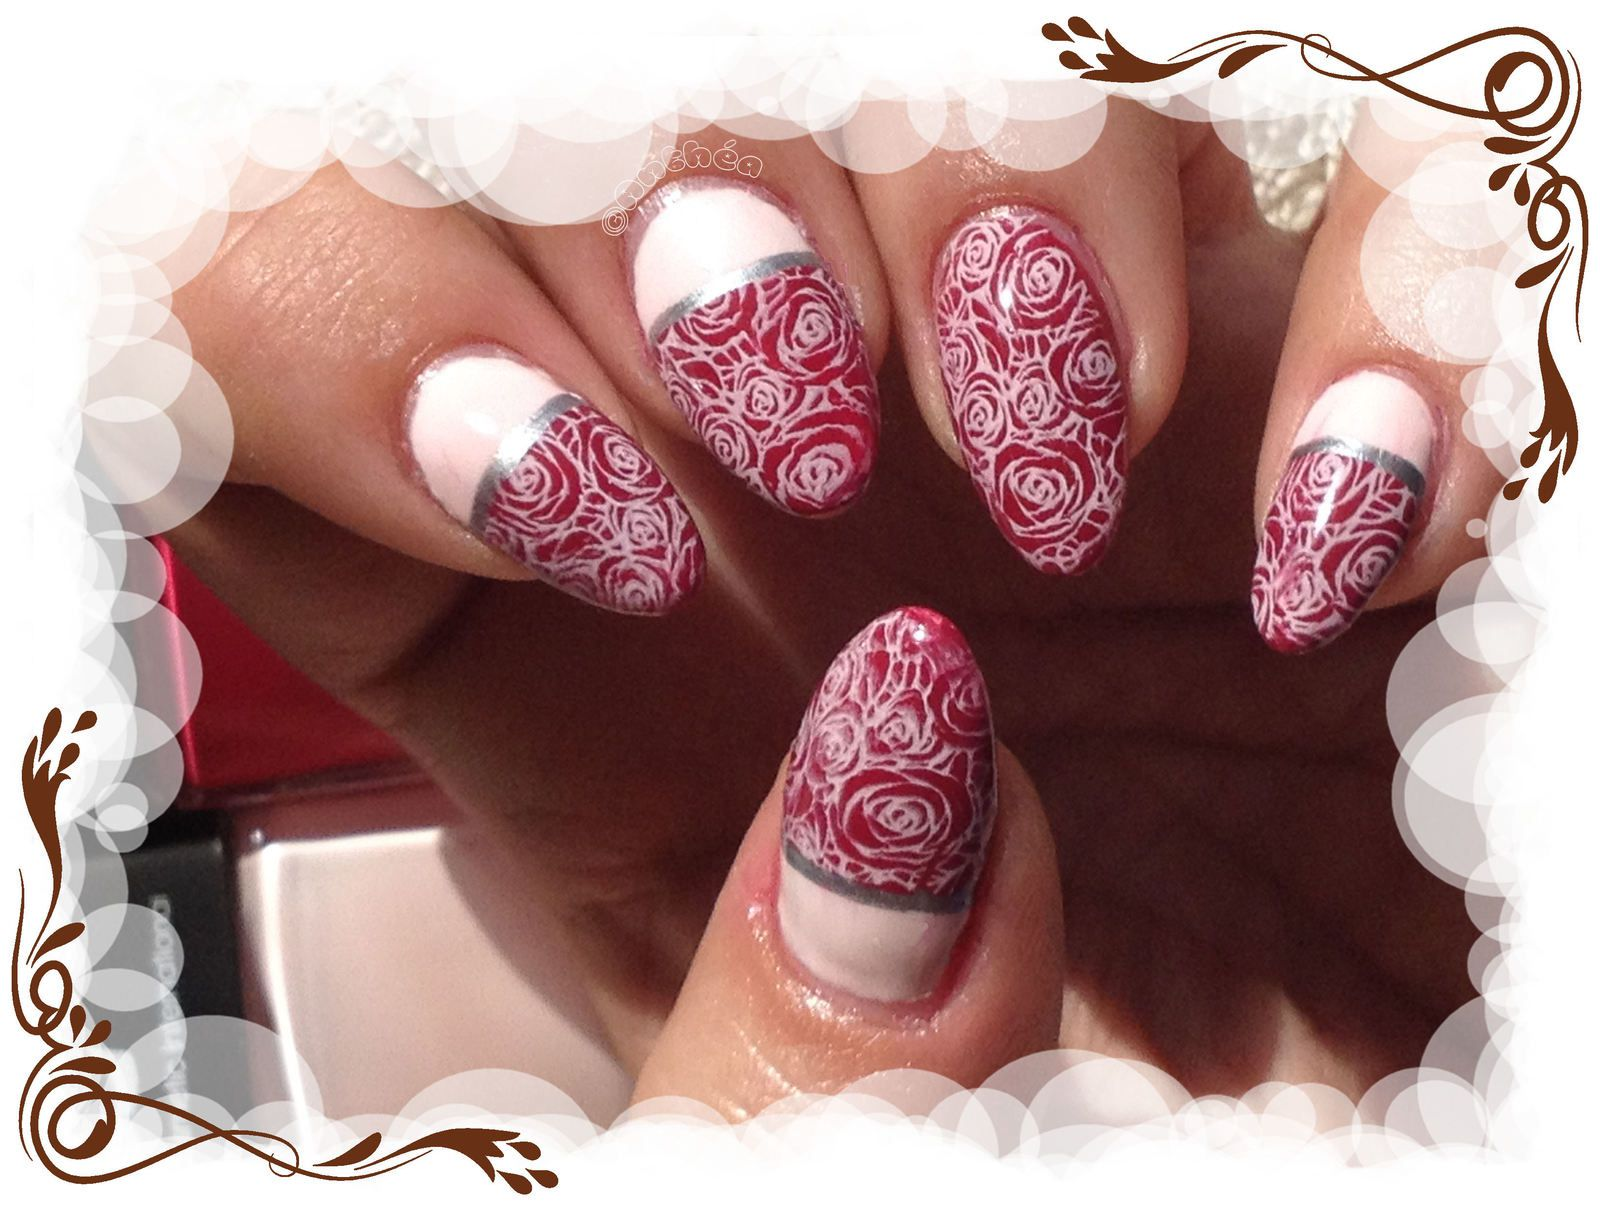 Stamping roses classico-impérial